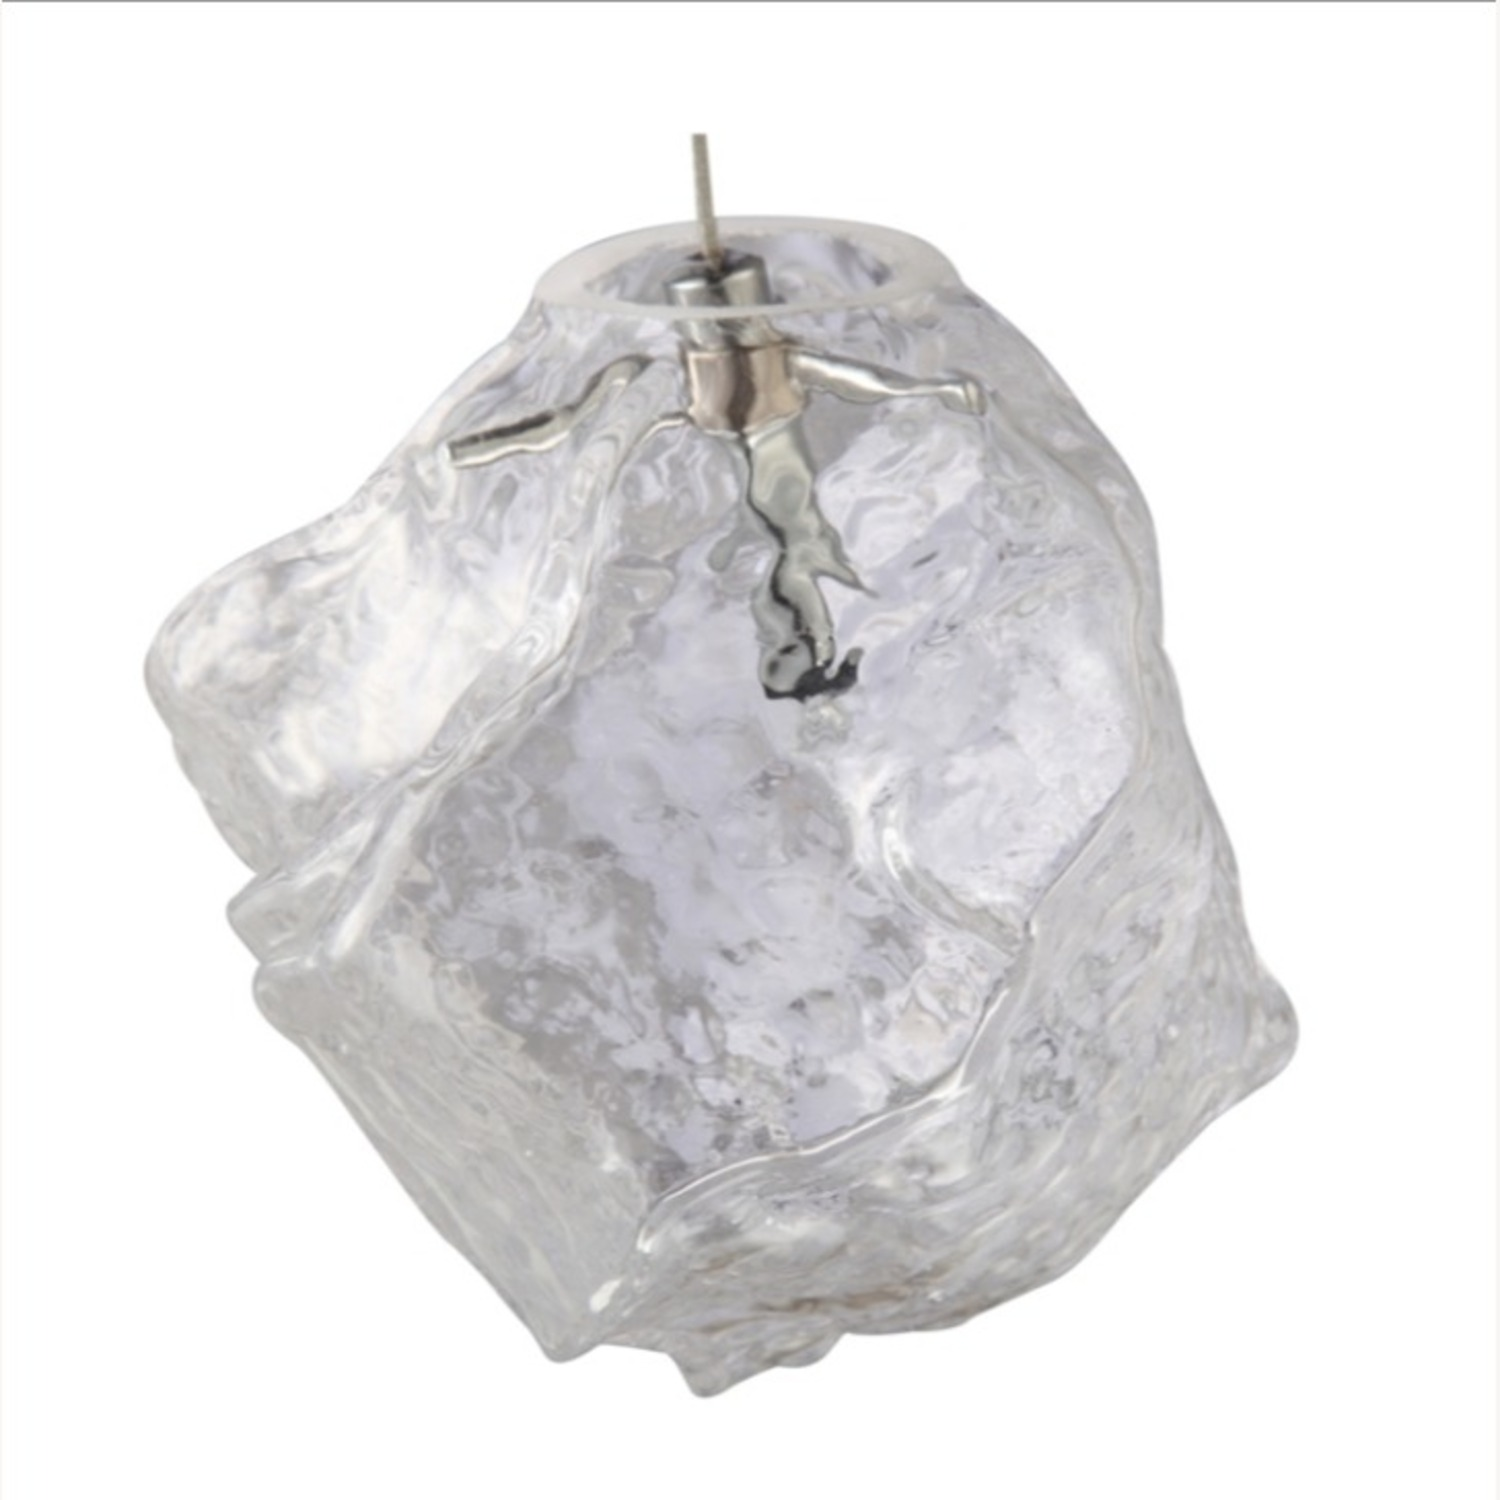 Lamp In Clear Glass Ice Pendant Design - image-2